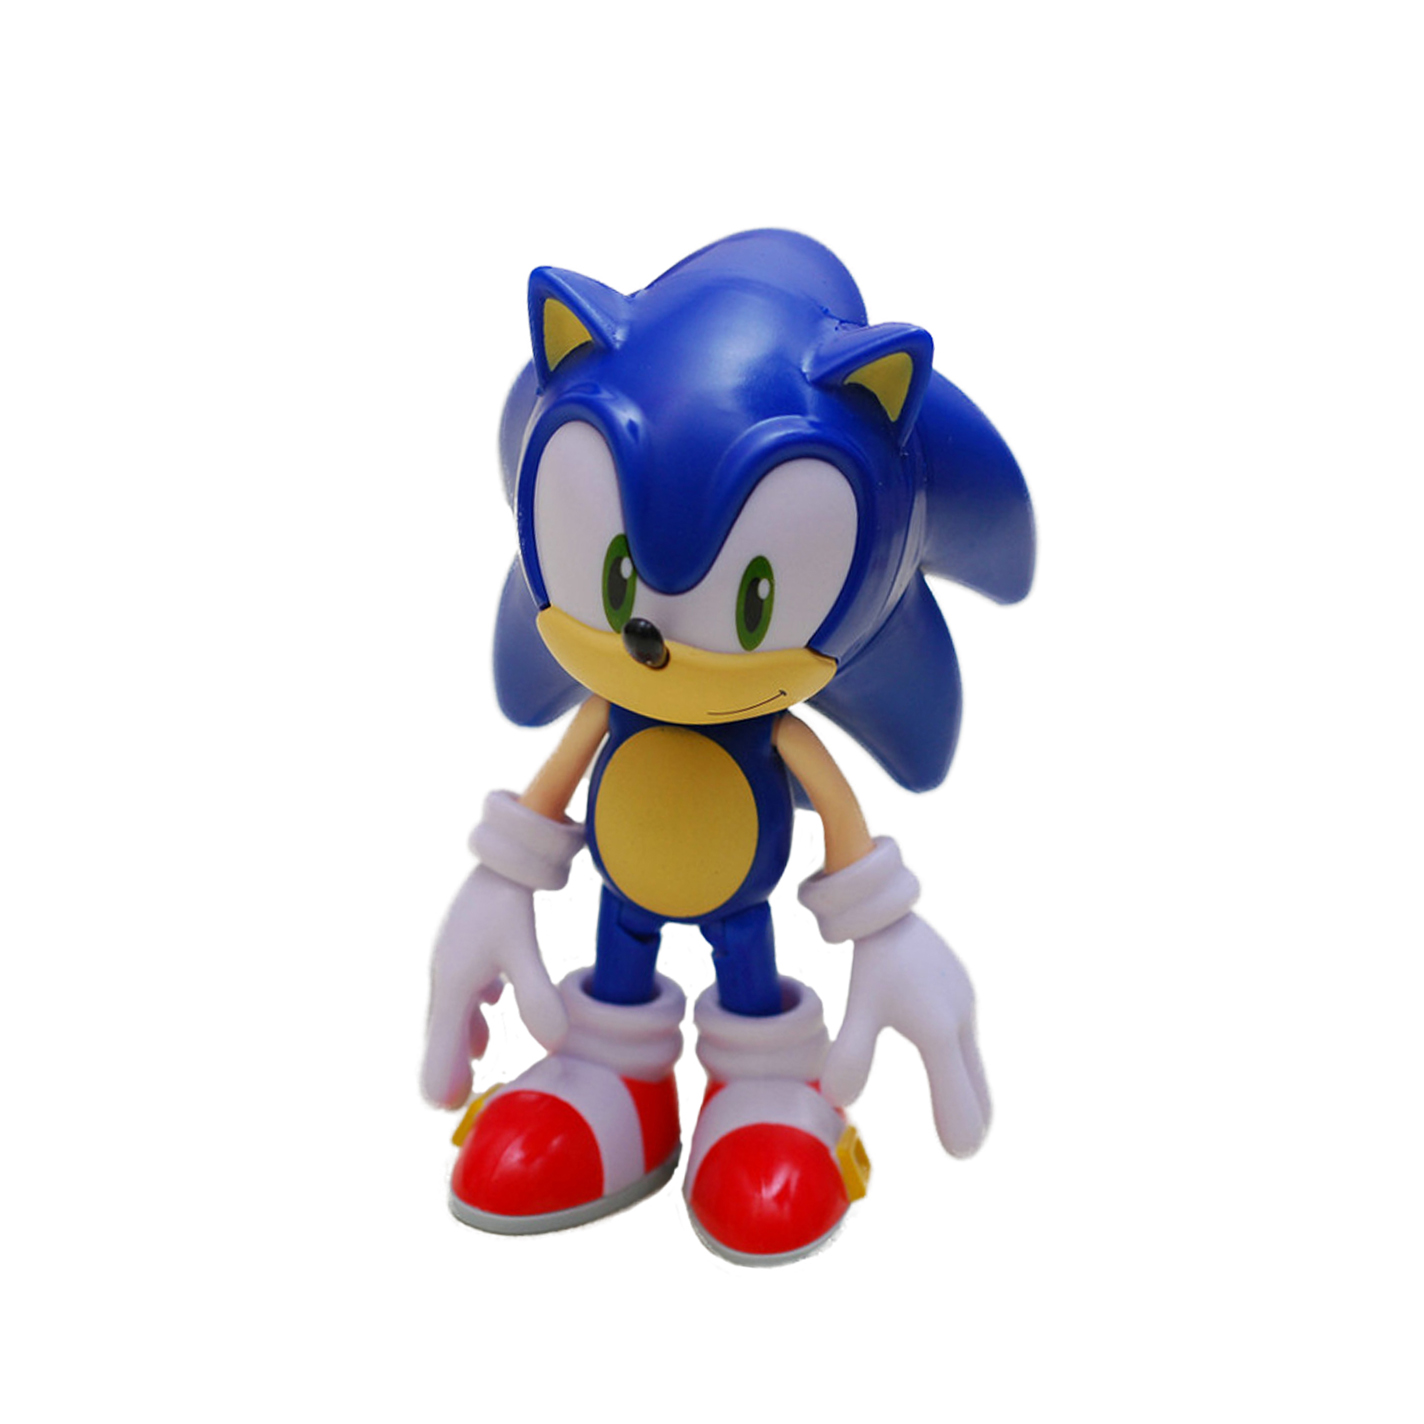 Chanycore GSC Nendoroid 566# Sonic Supersonic speed Hedgehog Action Figure Collection Model Toy 10cm 4'' chanycore gsc nendoroid 423 wo class aircraft plane carrier kantai collection boxed japanese anime action figure toy 10cm 4